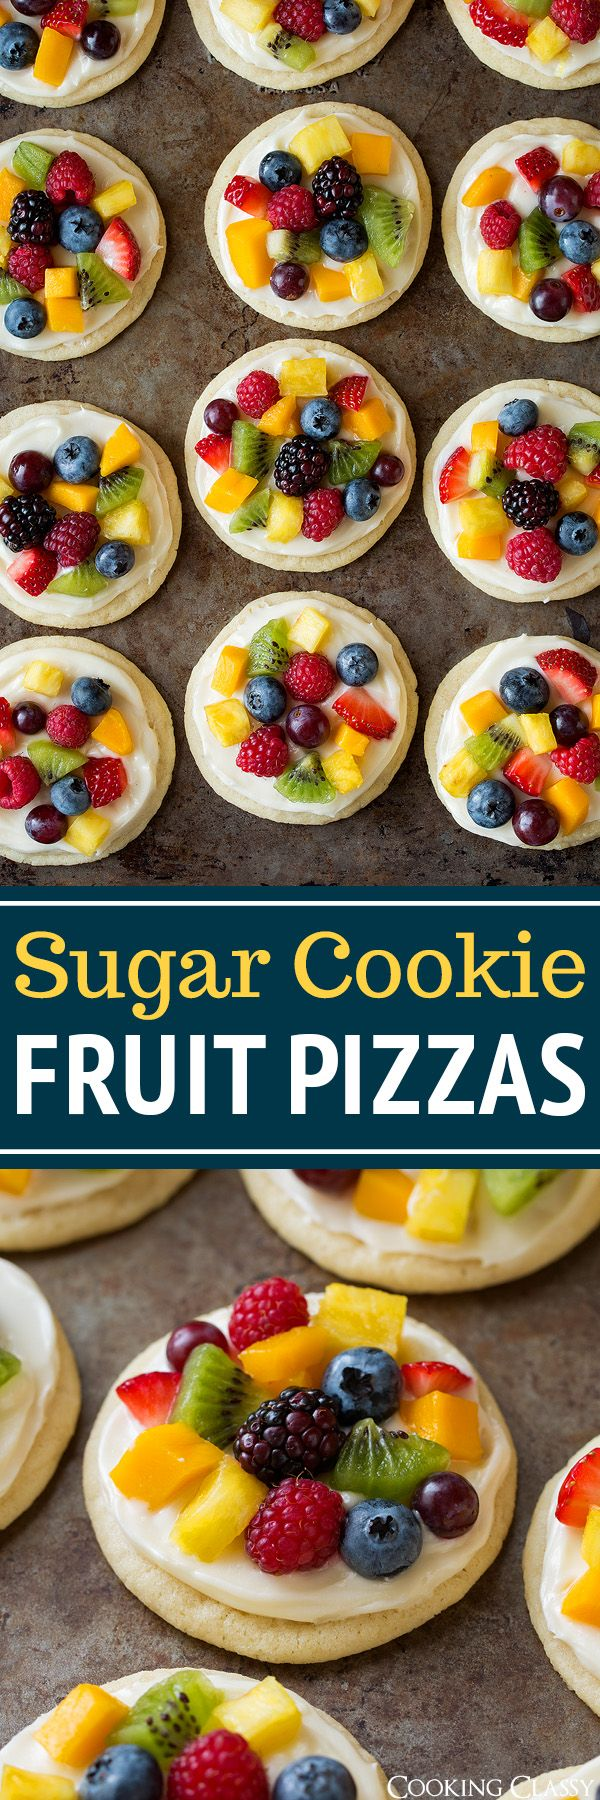 Sugar Cookie Fruit Pizzas (Chewy Version)